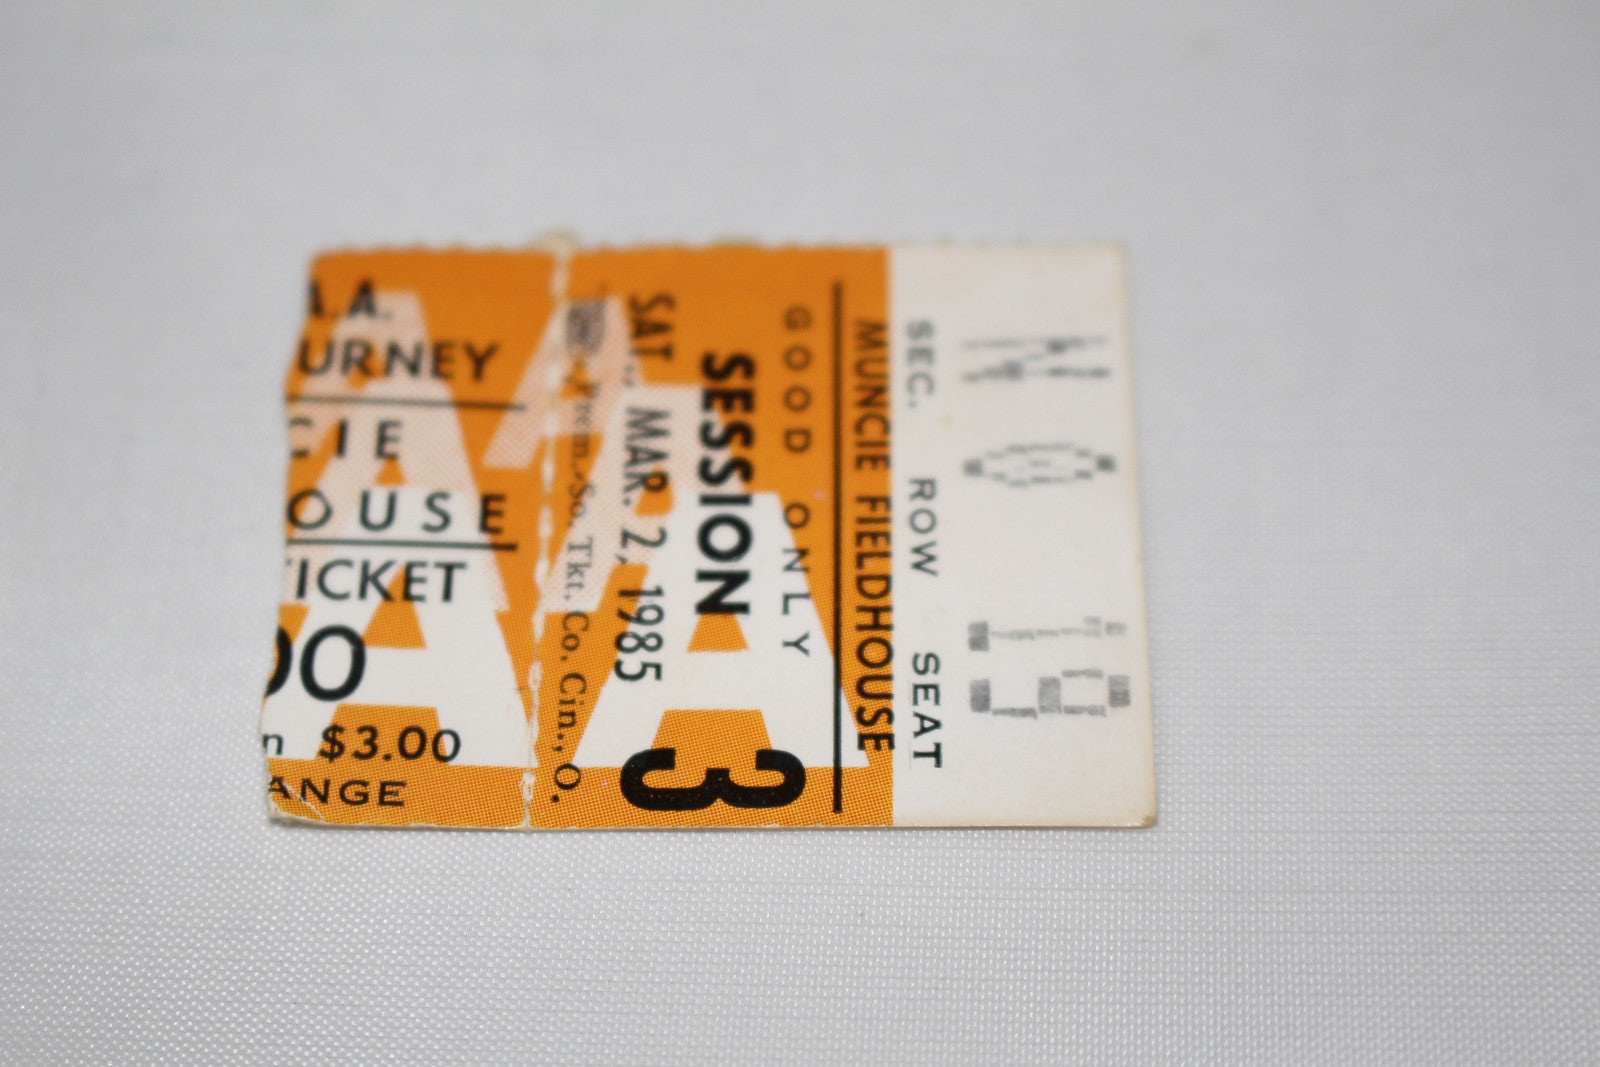 1985 Muncie Indiana High School Basketball Sectional Ticket Stub - Vintage Indy Sports